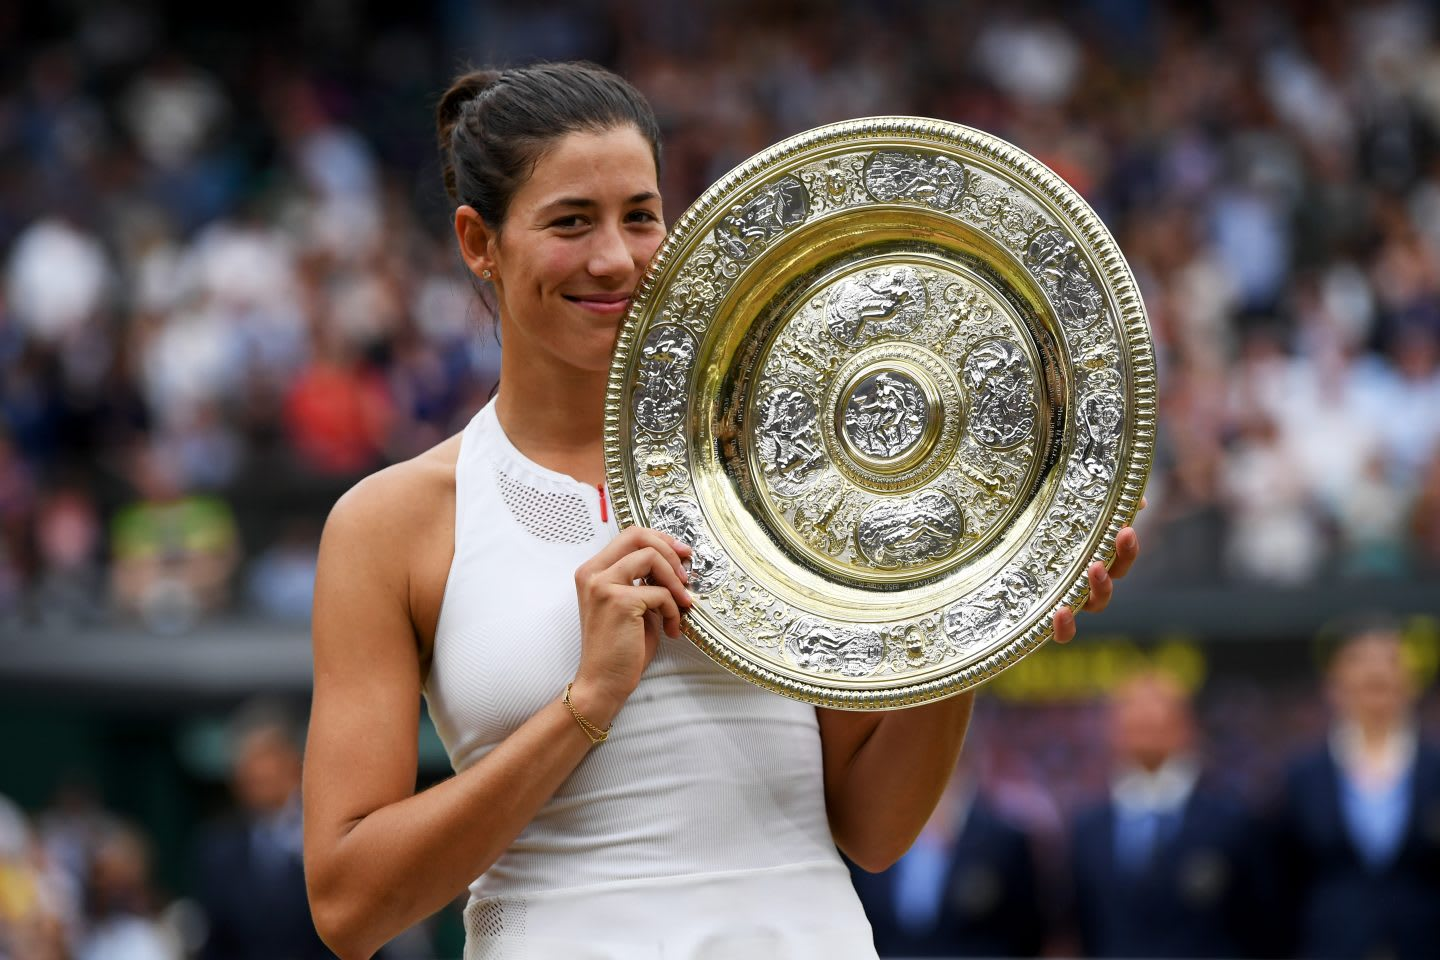 Garbine Muguruza is standing on the tennis court, holding a trophy. Athlete; Tennis; Champion; Wimbledon; adidas; GamePlan A; Motivation; Win; Dedication; Inspiration